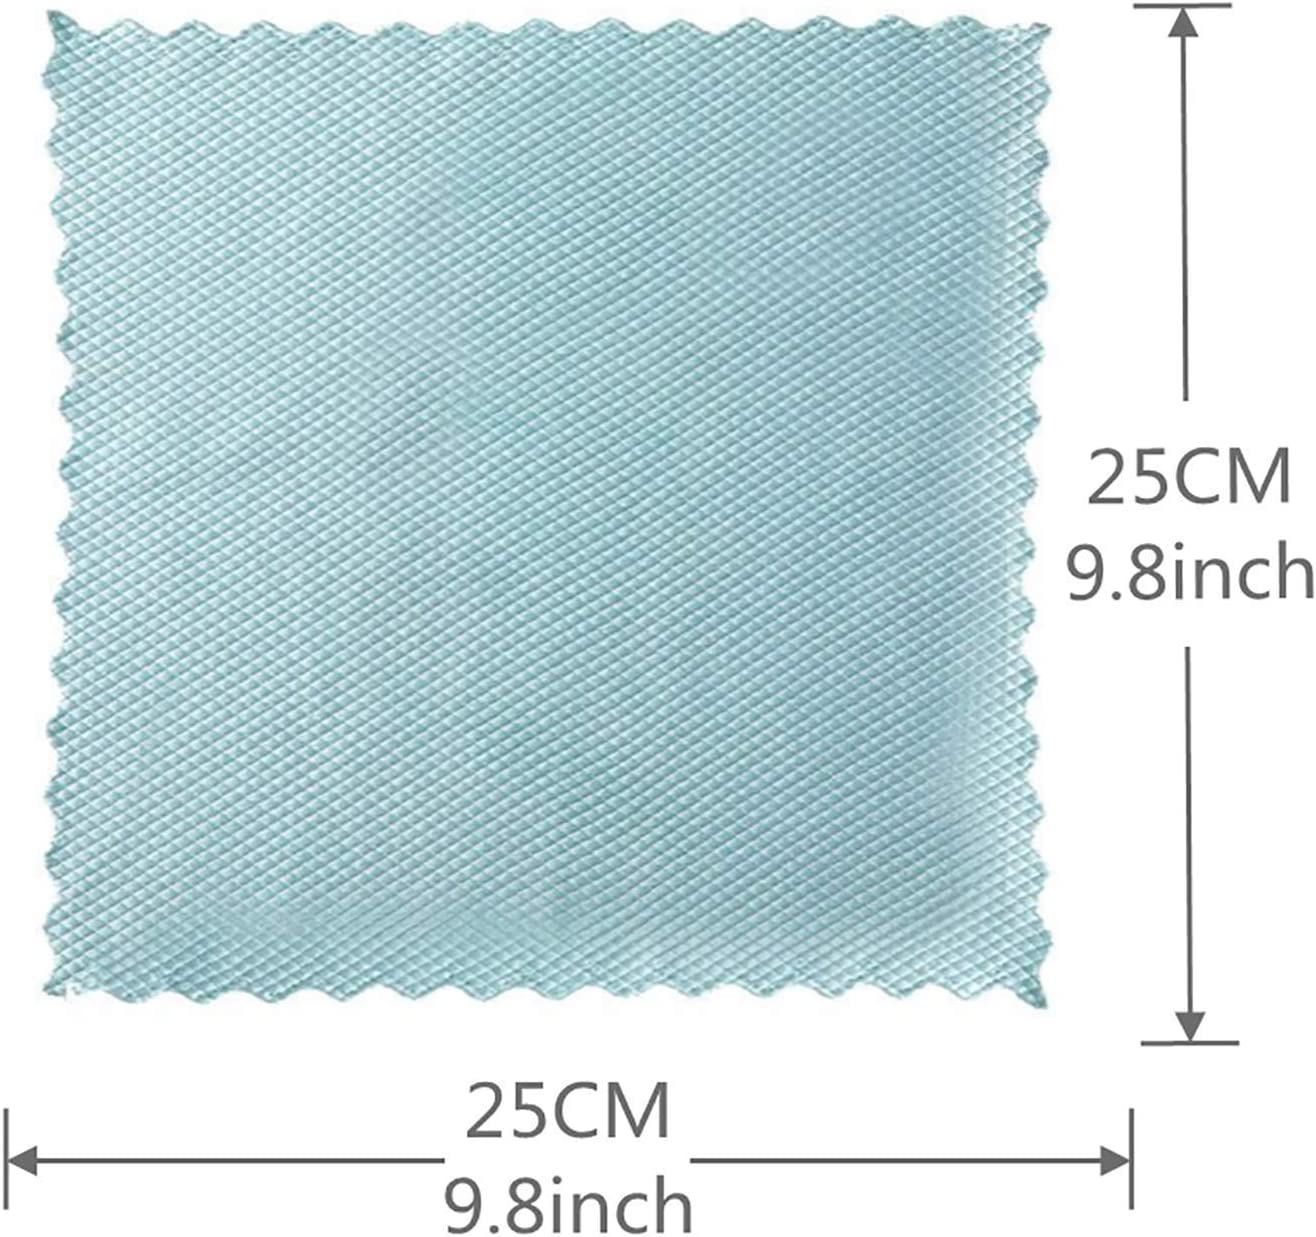 Fish Scale Microfiber Polishing Cleaning Cloth 10pcs for Cleaning Mirror//Glass//Screen Microfiber Cloth Cleaning Rag Glass Towel Lint Free Highly Absorbent Dish Wipes Wave Pattern Fish Scale Cloth